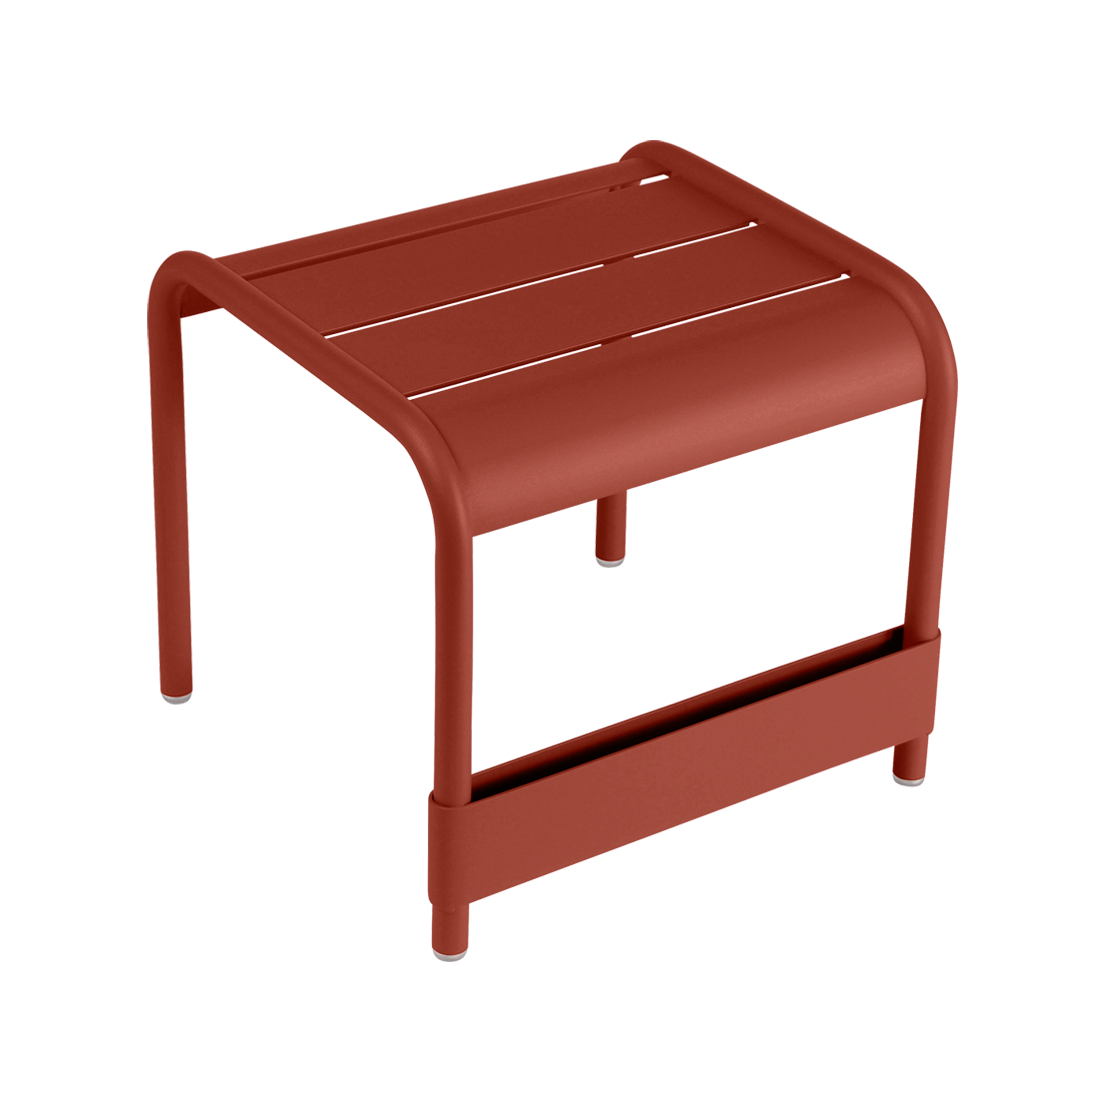 Petite table basse / Repose-pied luxembourg ocre rouge